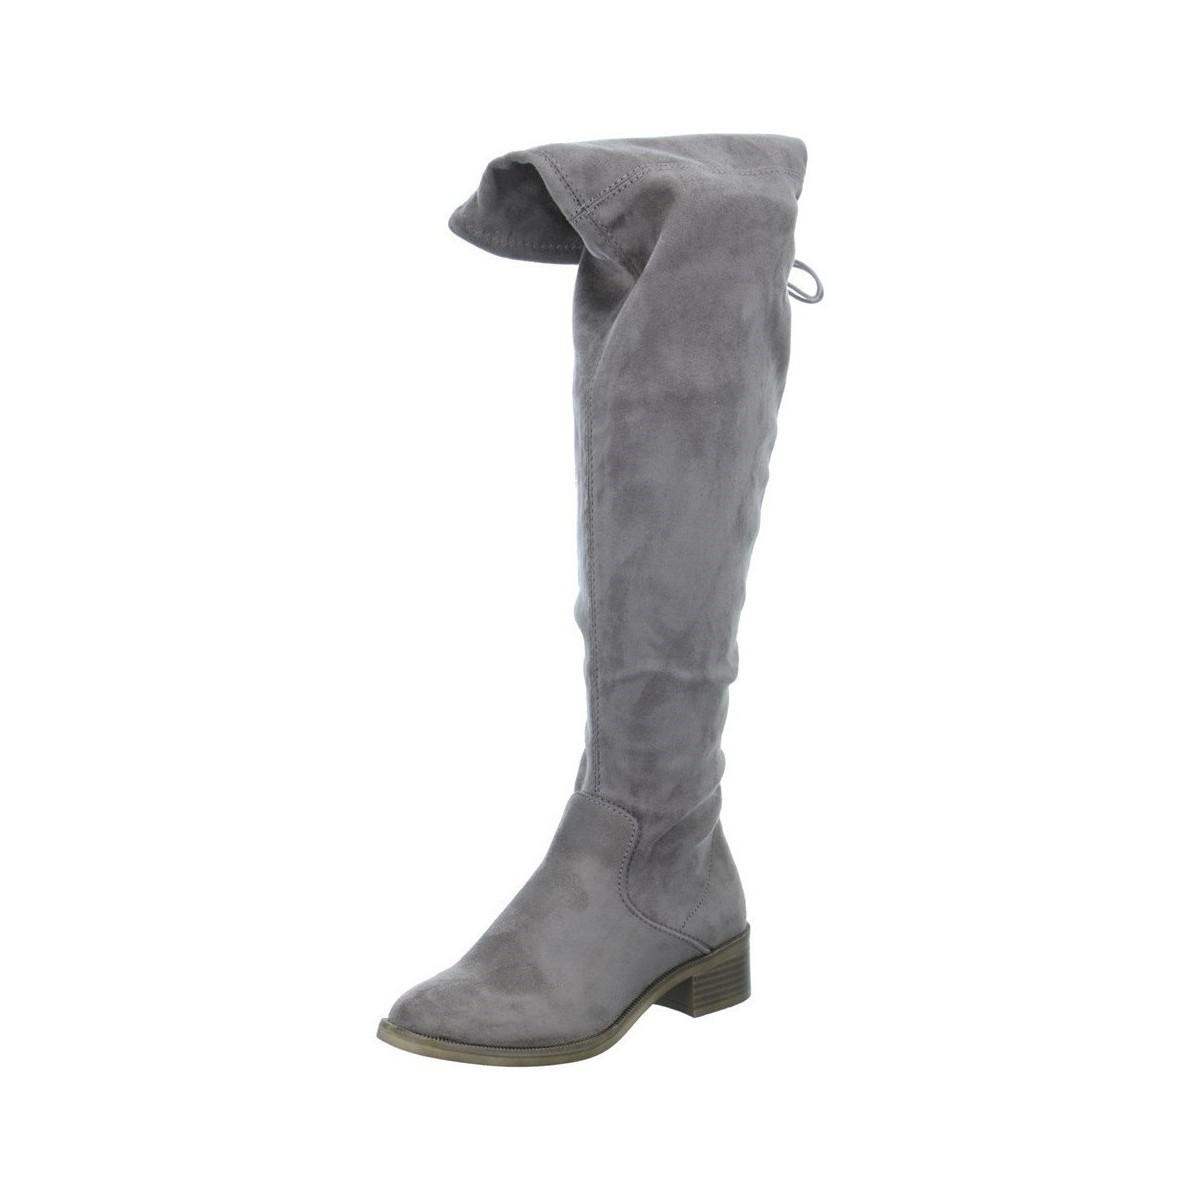 s.Oliver 552561727 347 women's High Boots in Outlet Good Selling Shopping Online Clearance Great Deals Cheap Online Clearance Factory Outlet SiqktfZ1S